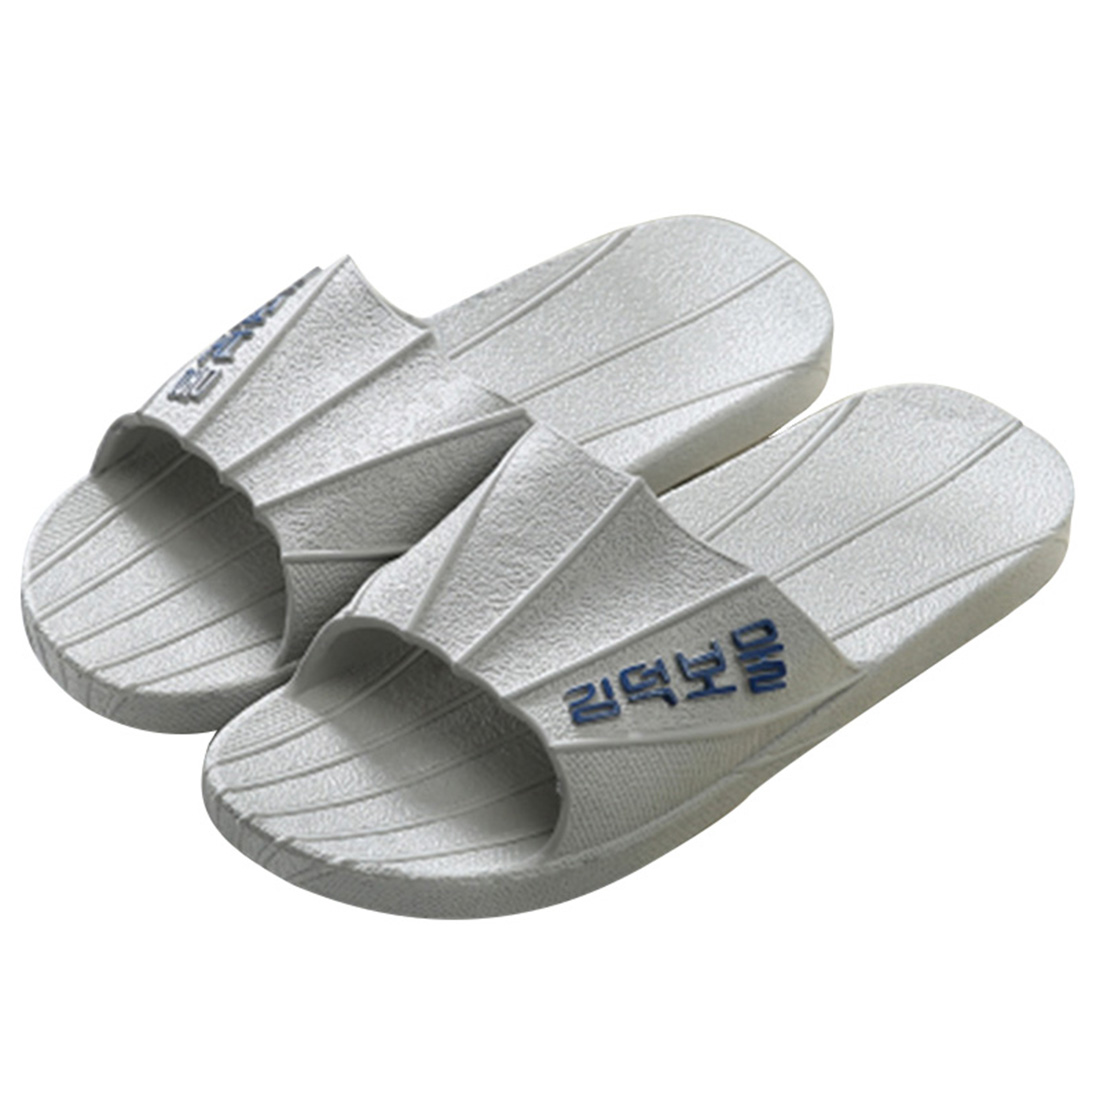 08b209786691 Hot Sale Men Women Slippers Summer Home Shoes Bathroom Sandals Shower Non  Slip Mens Slippers Slides